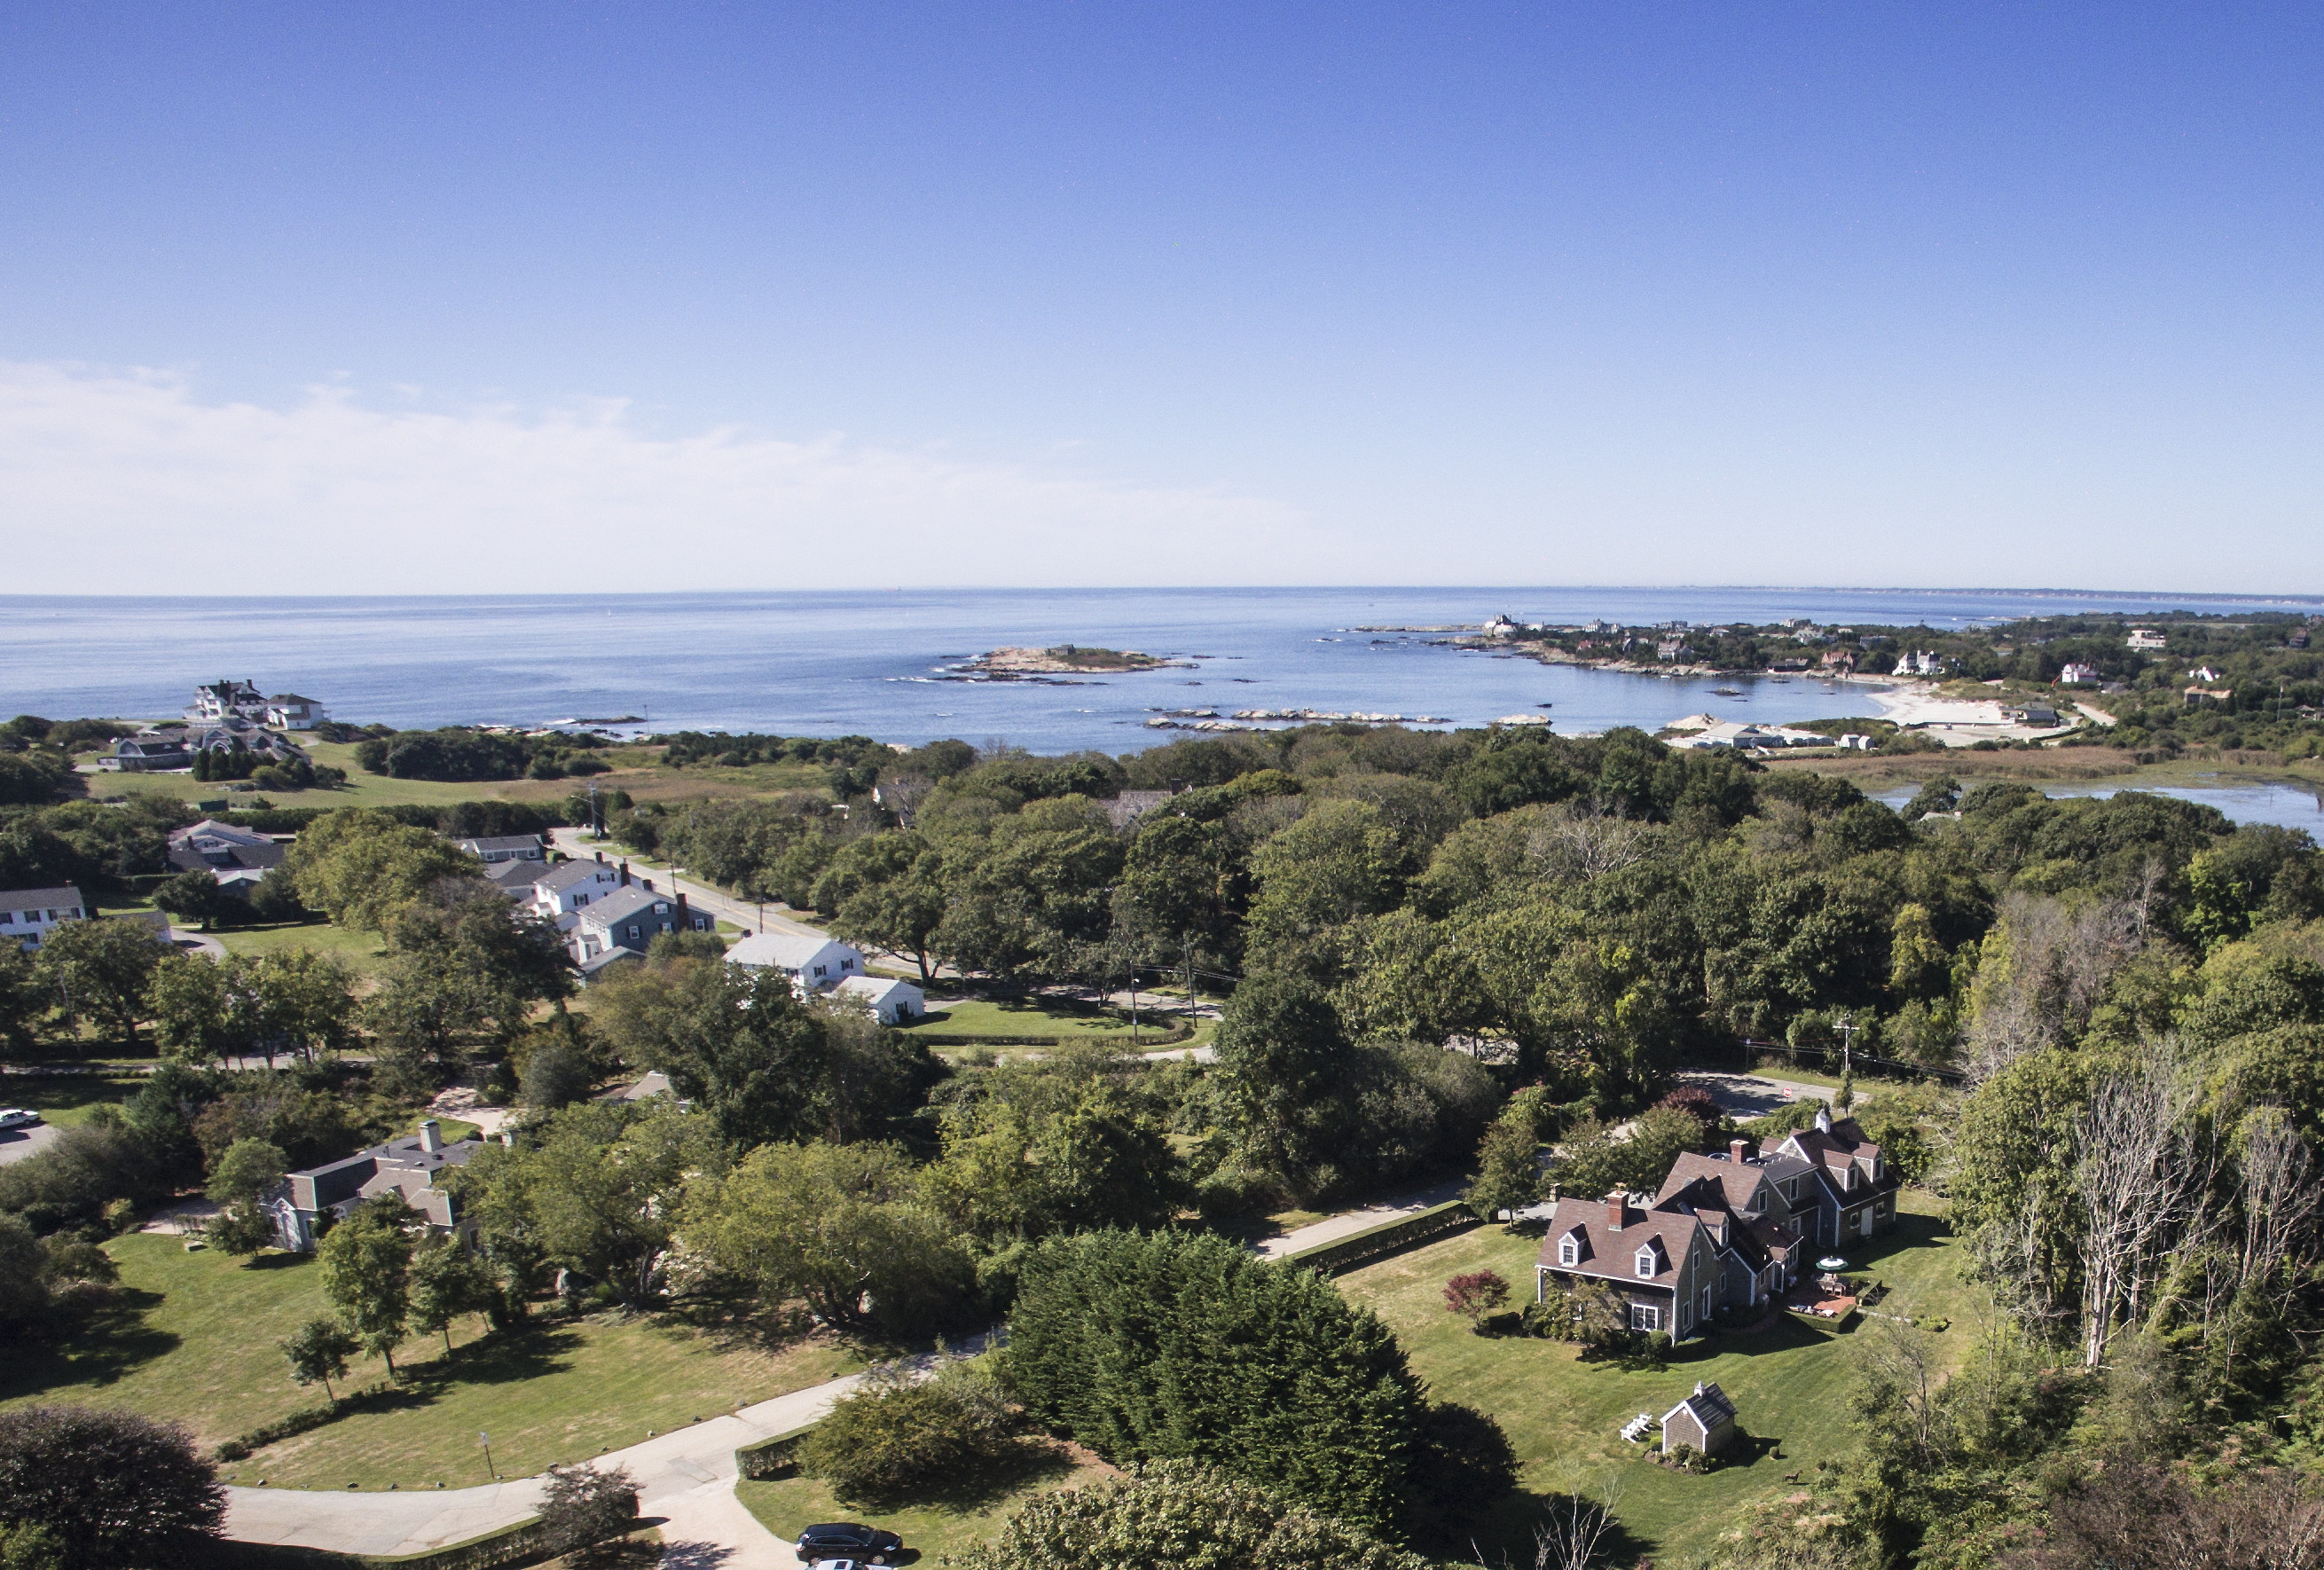 Single Family Home for Sale at Camrose Cottage 2 Alpond Drive Newport, Rhode Island 02840 United States